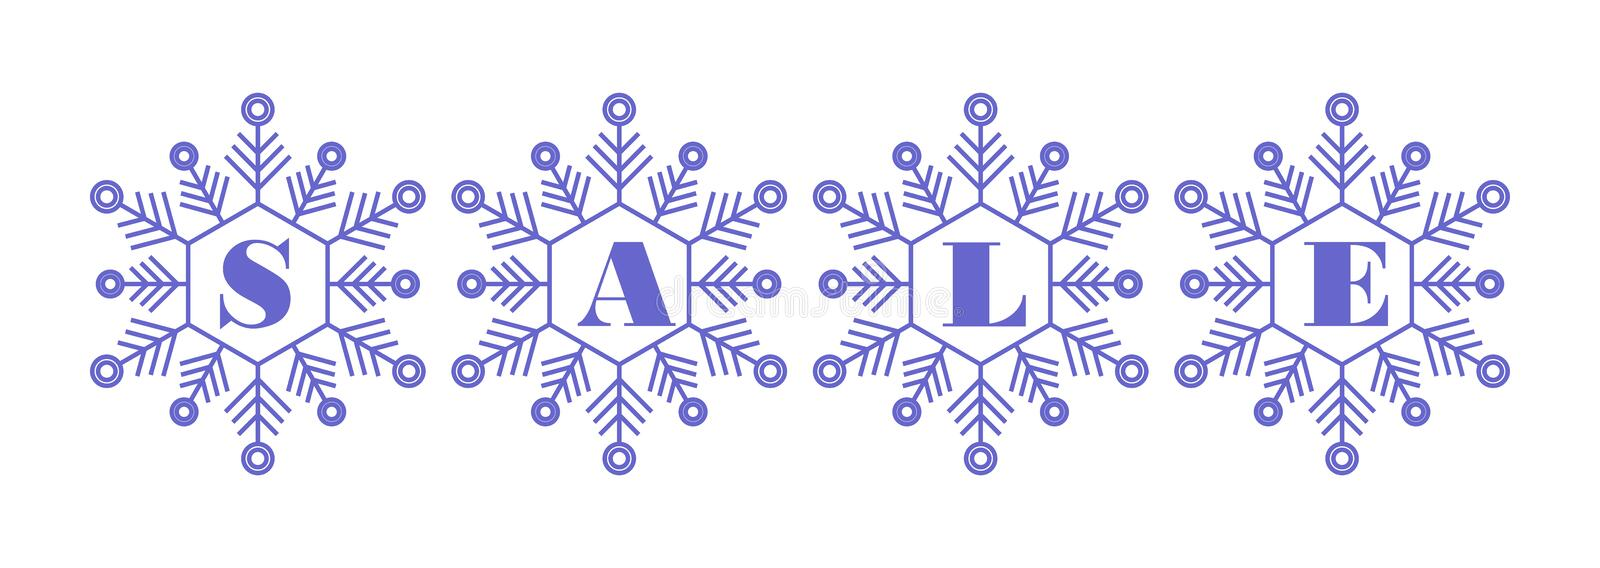 Winter sale  icon blue letters on snowflakes white background royalty free stock image